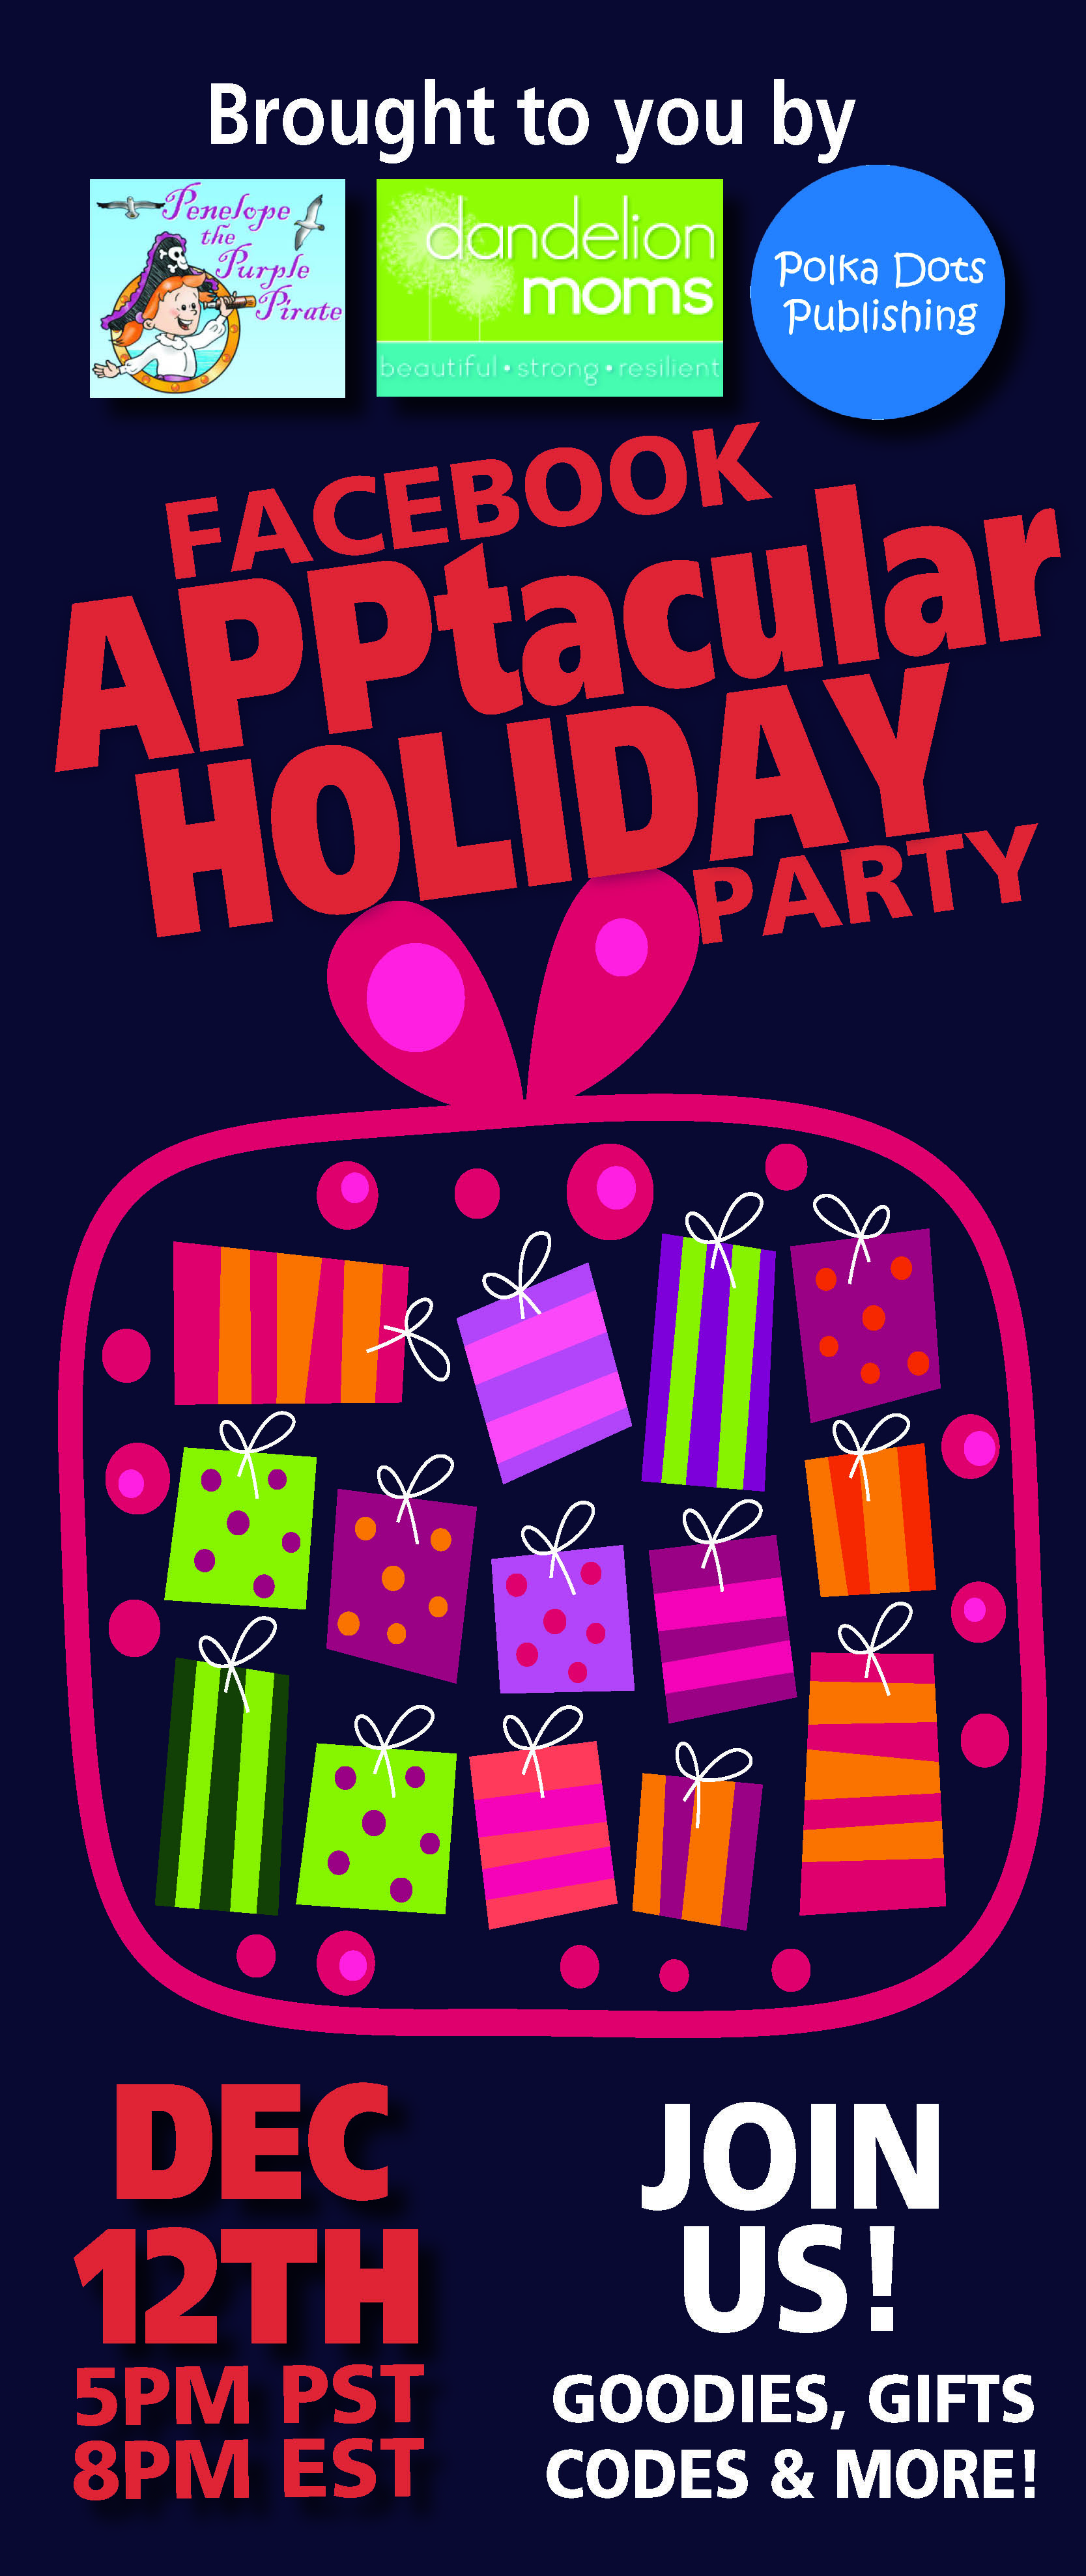 Holiday Facebook Party on December 12th